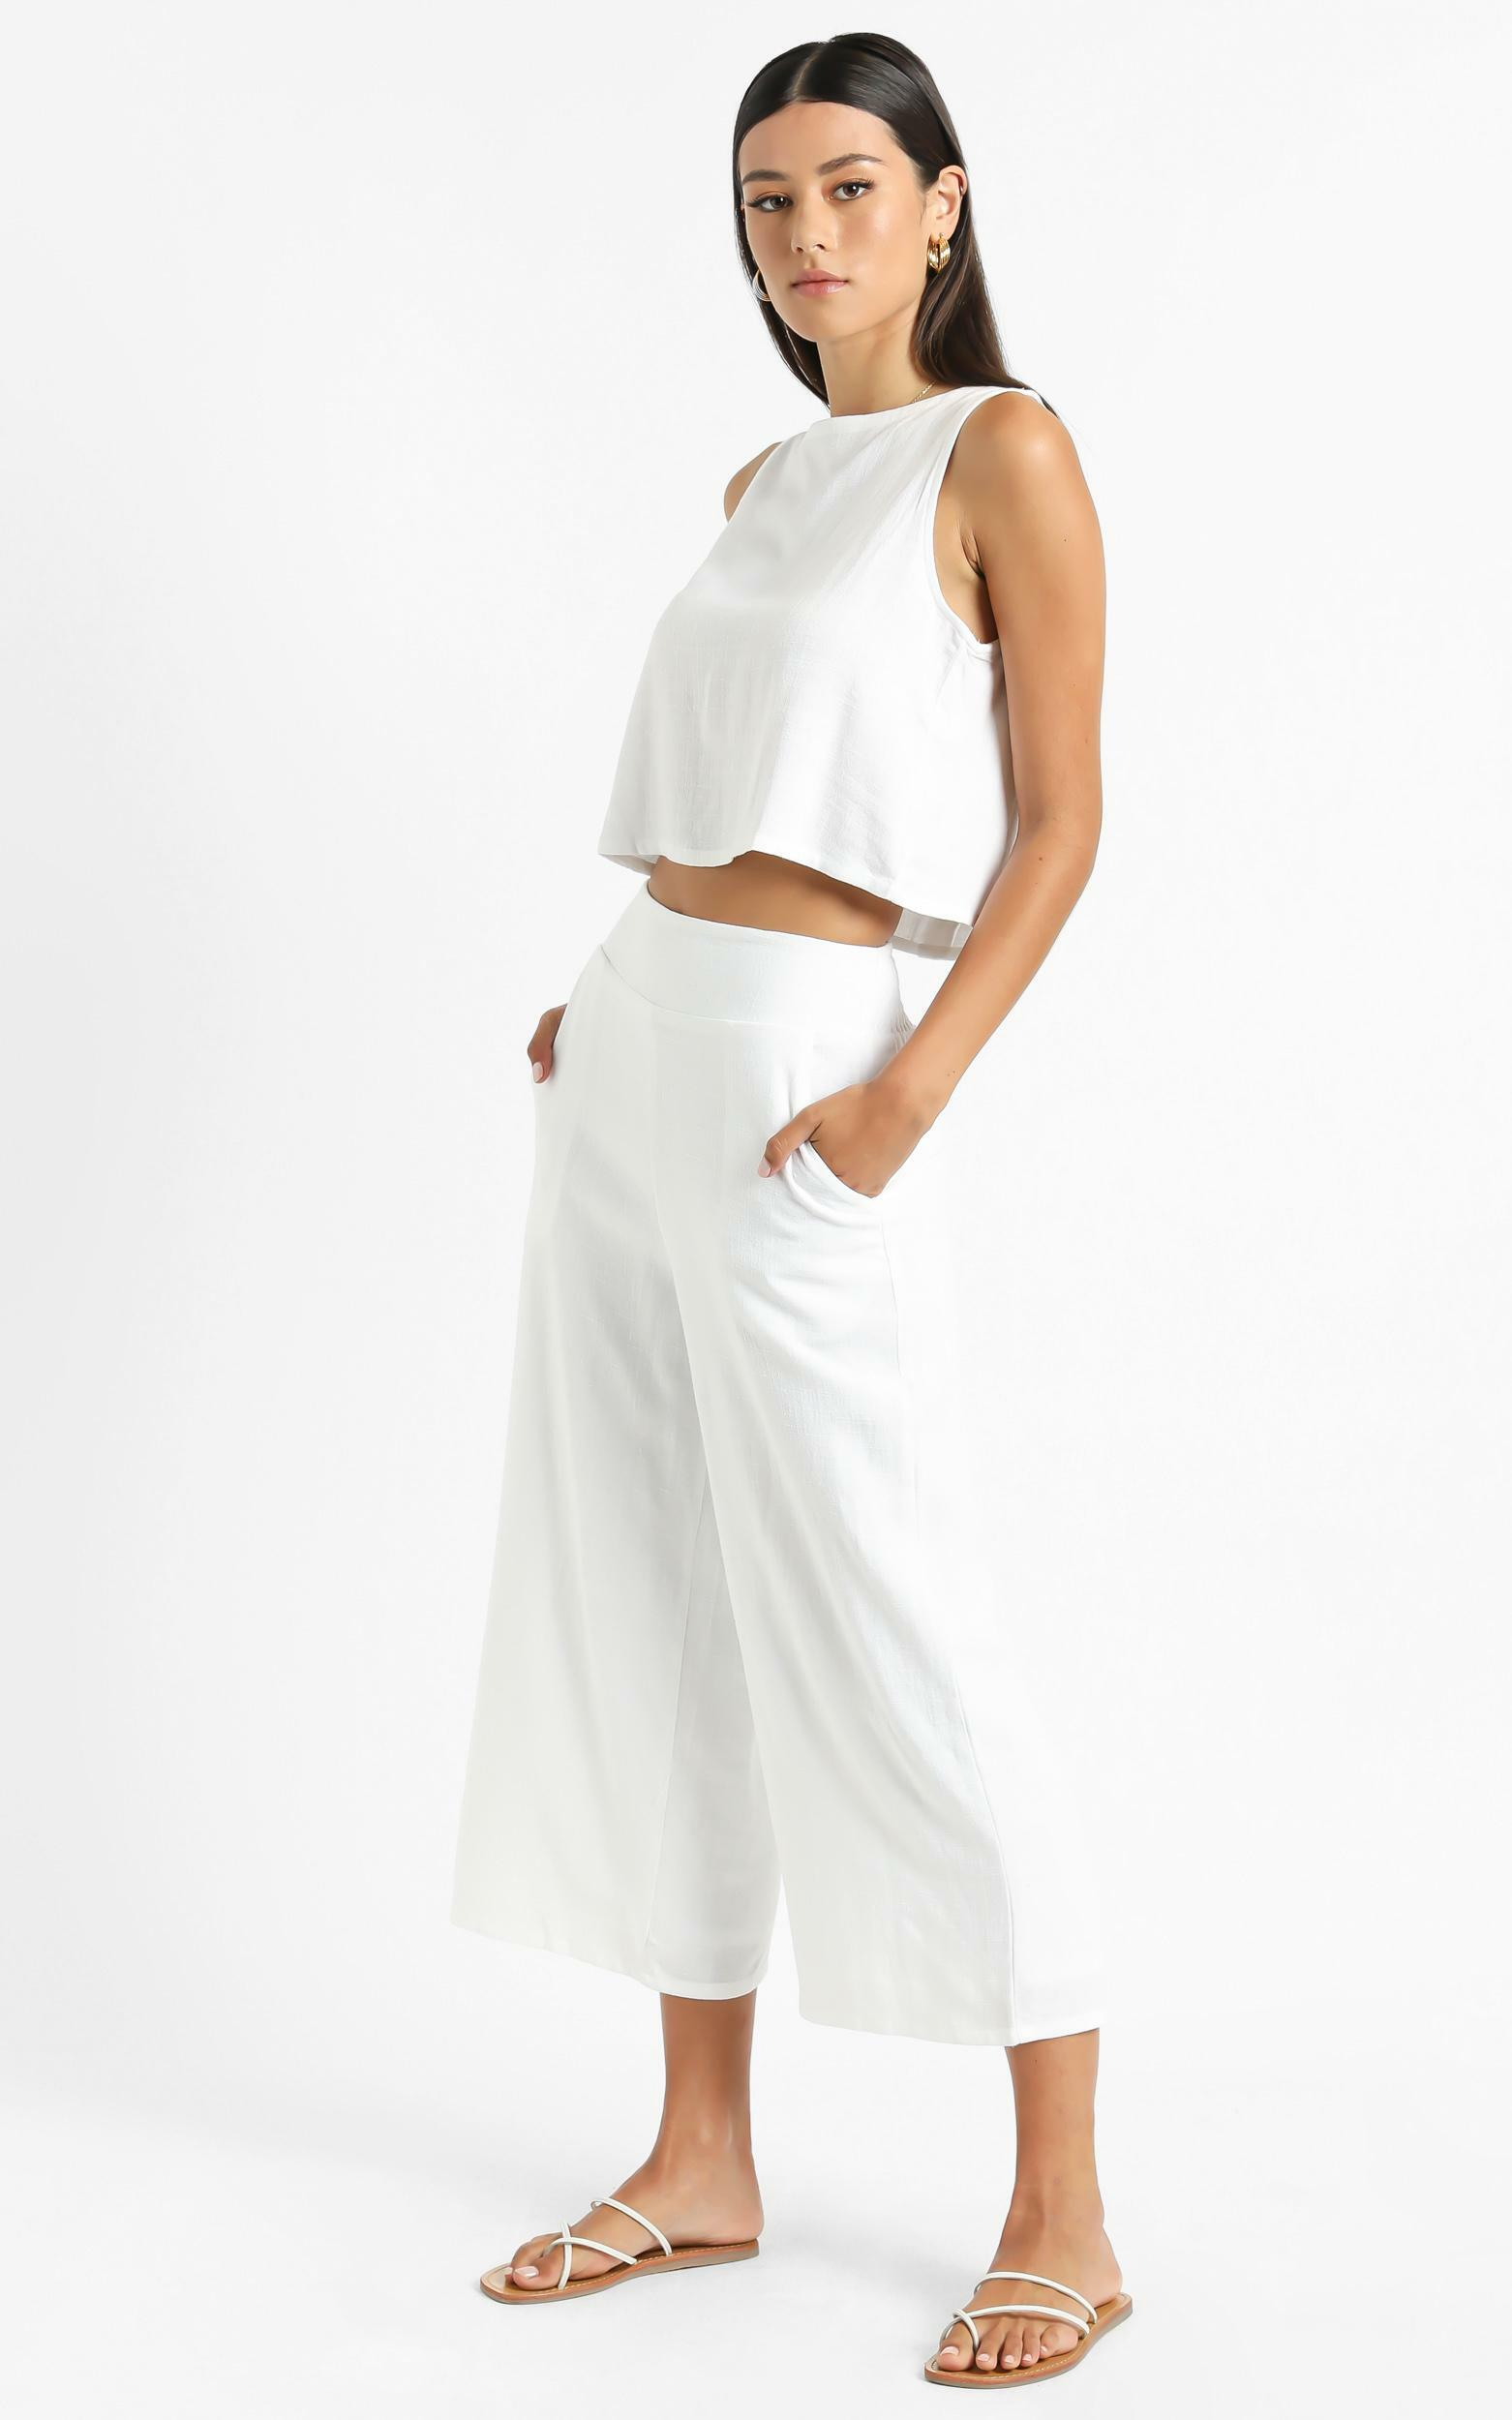 Eyes On Love Pants in White - 6 (XS), White, hi-res image number null